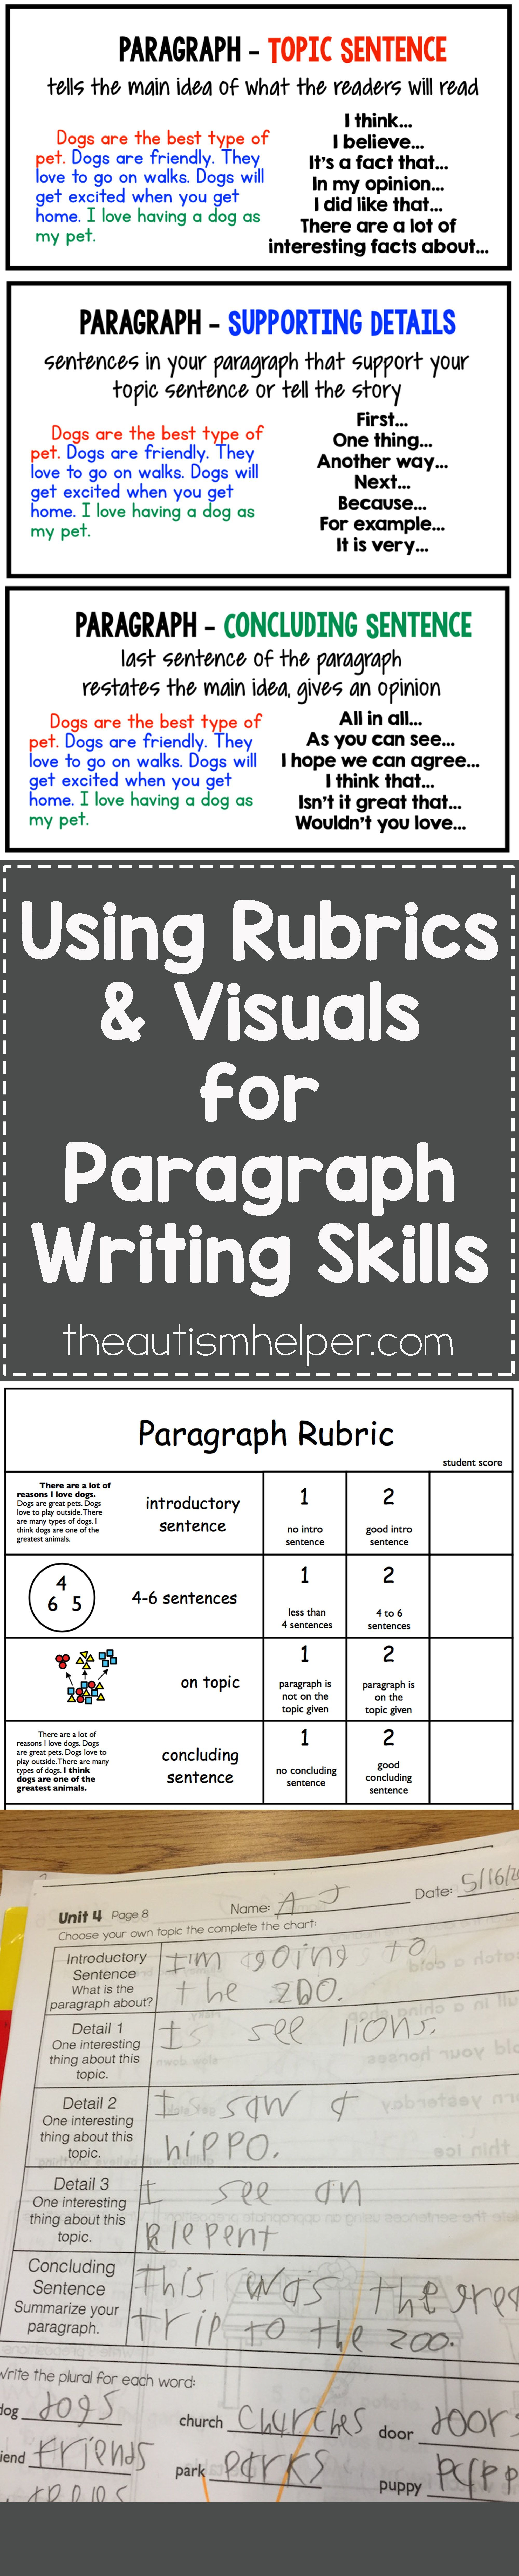 Using A Rubrics Amp Visuals For Paragraph Writing Skills